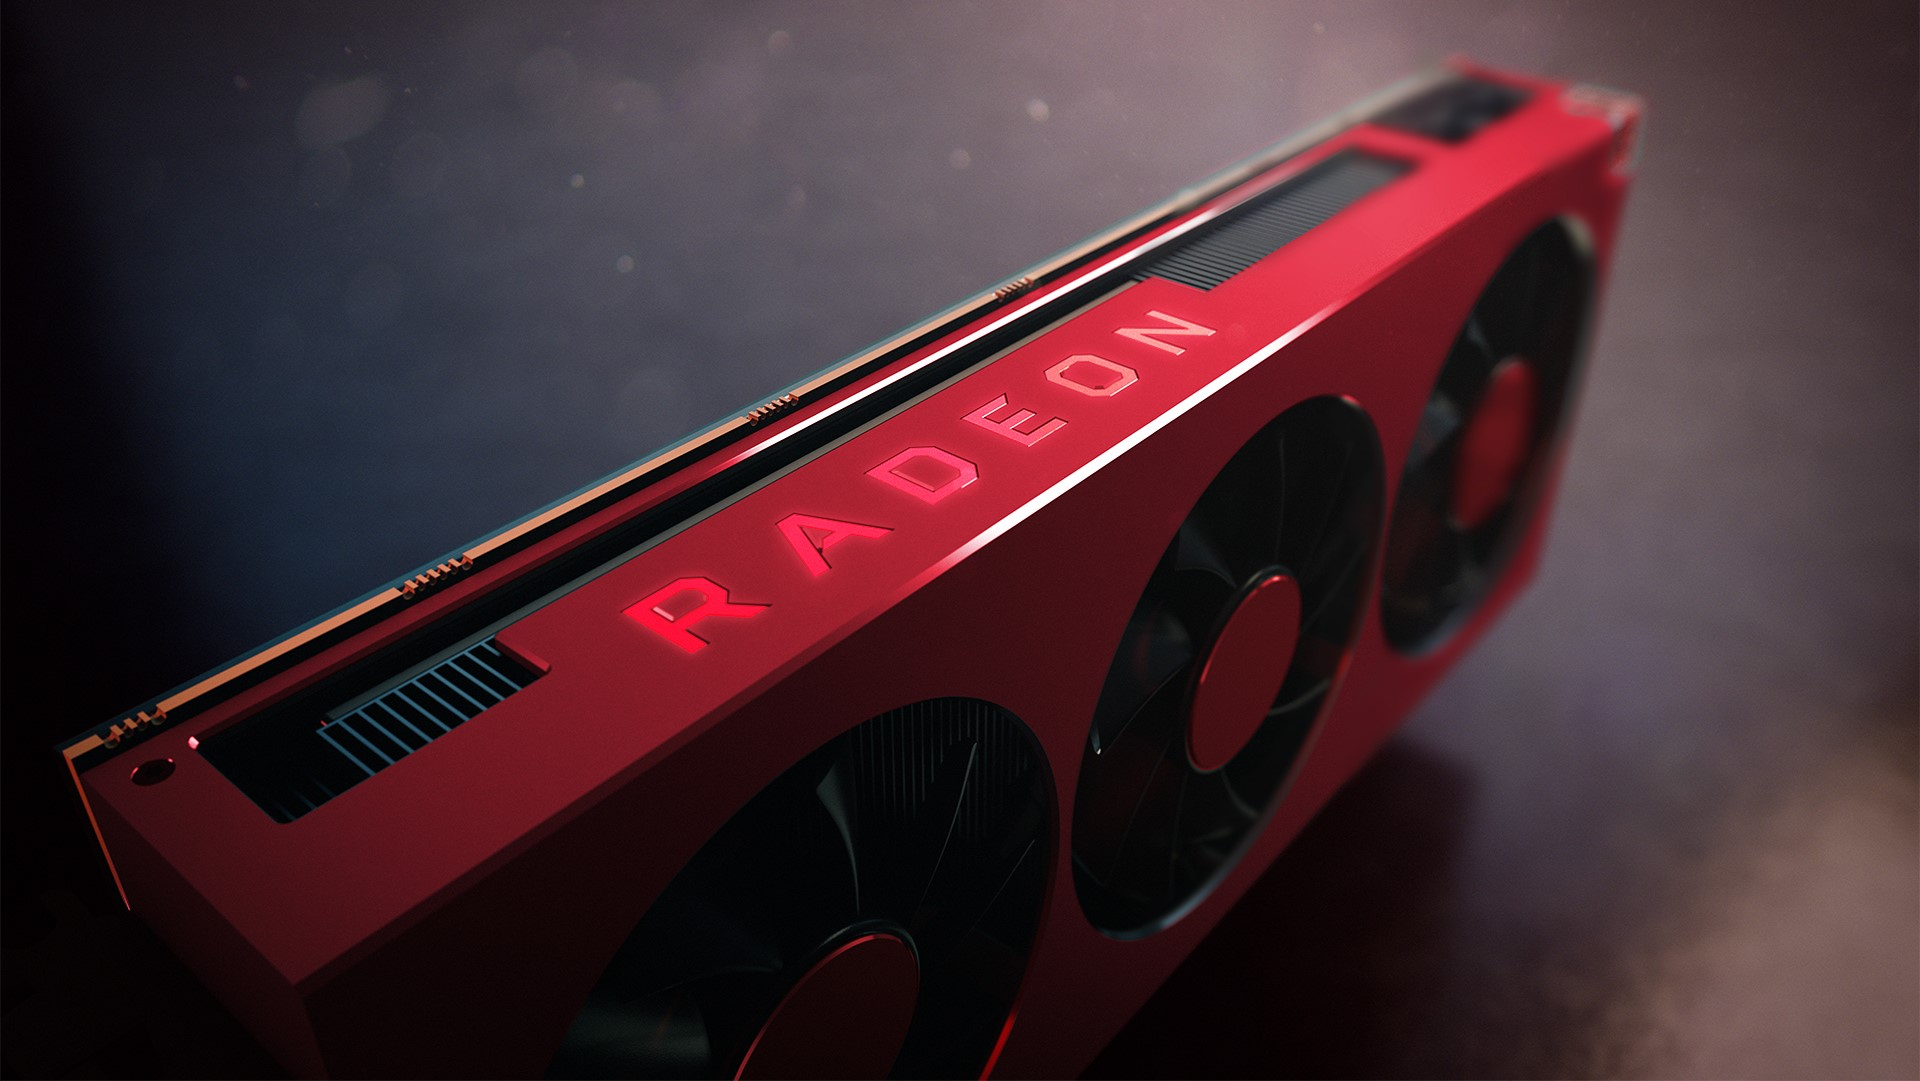 A Family Of Amd Next Generation Gpus Just Passed Rra Certification Is This The Radeon 5950 Xt Big Navi